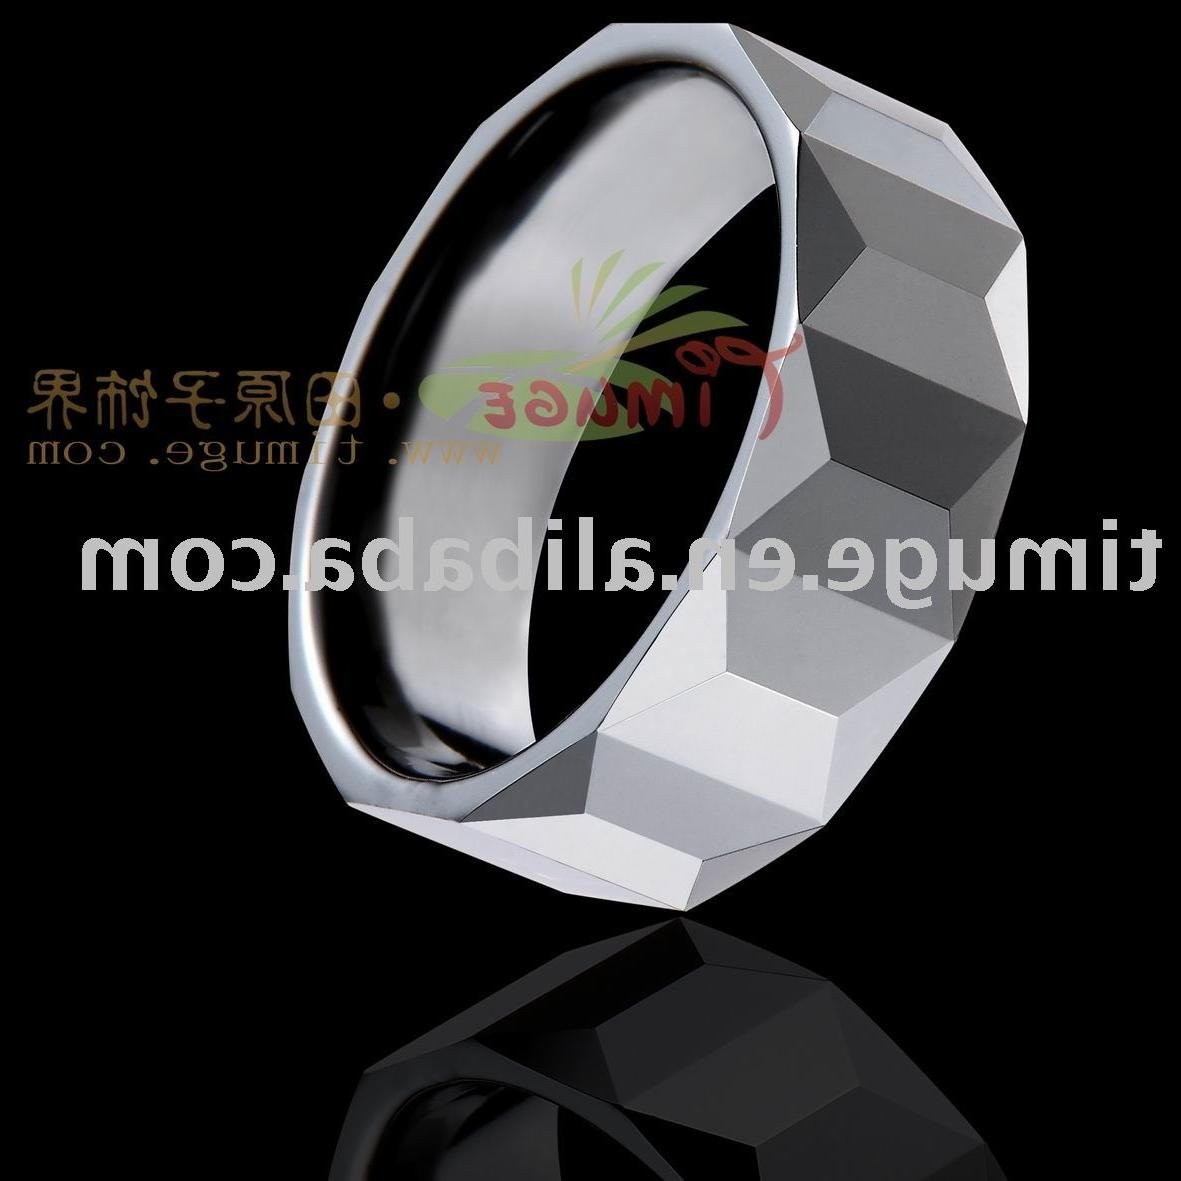 Tungsten ring, wedding jewelry, wedding ring. Inquire now